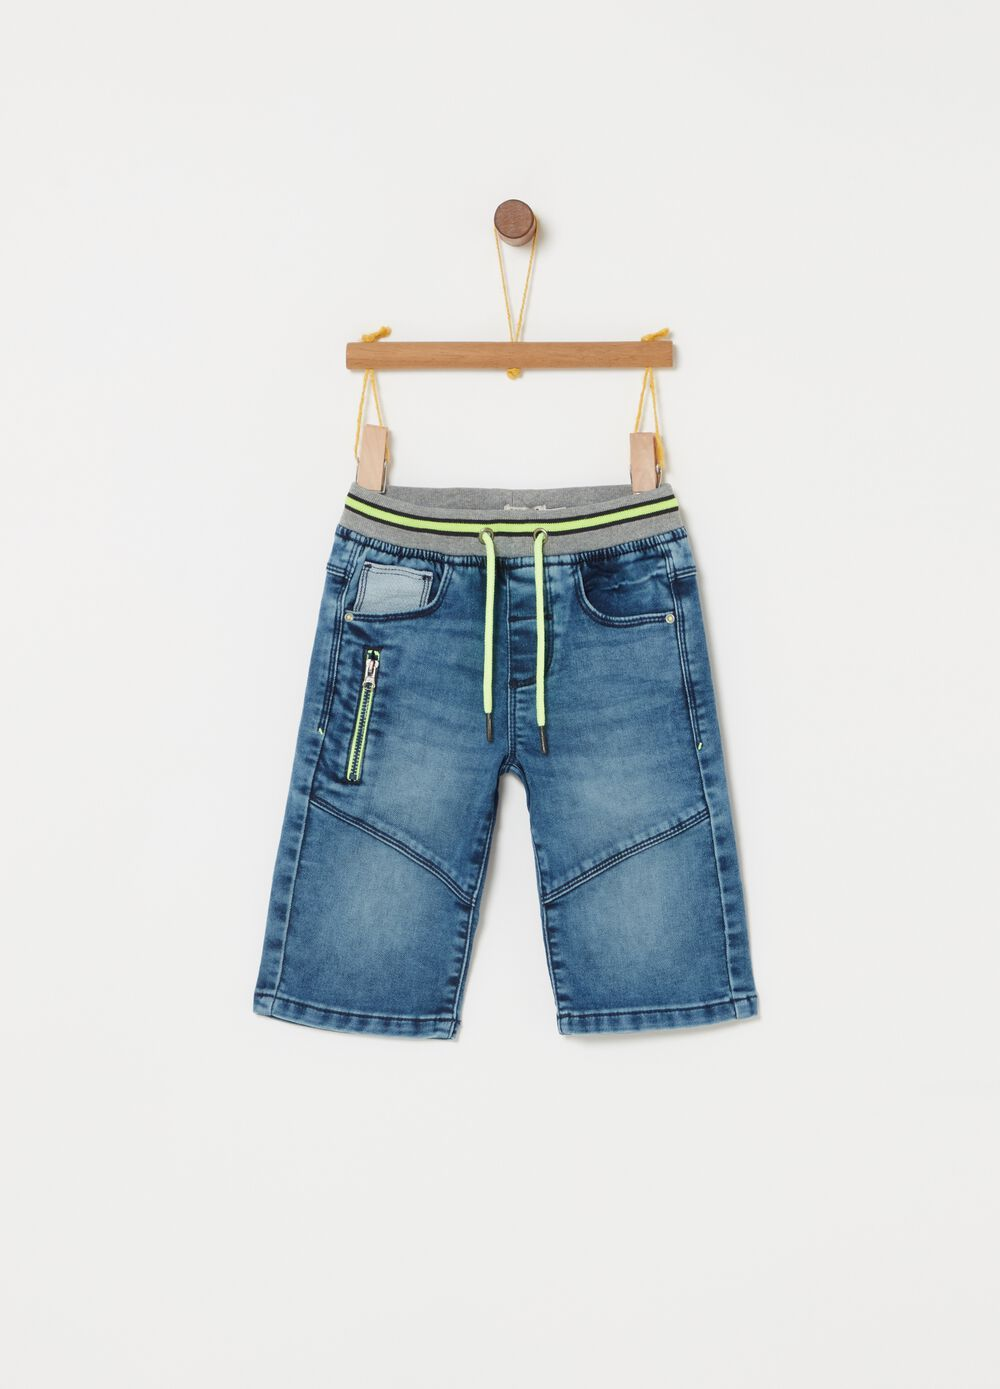 Denim shorts with drawstring and functional pockets